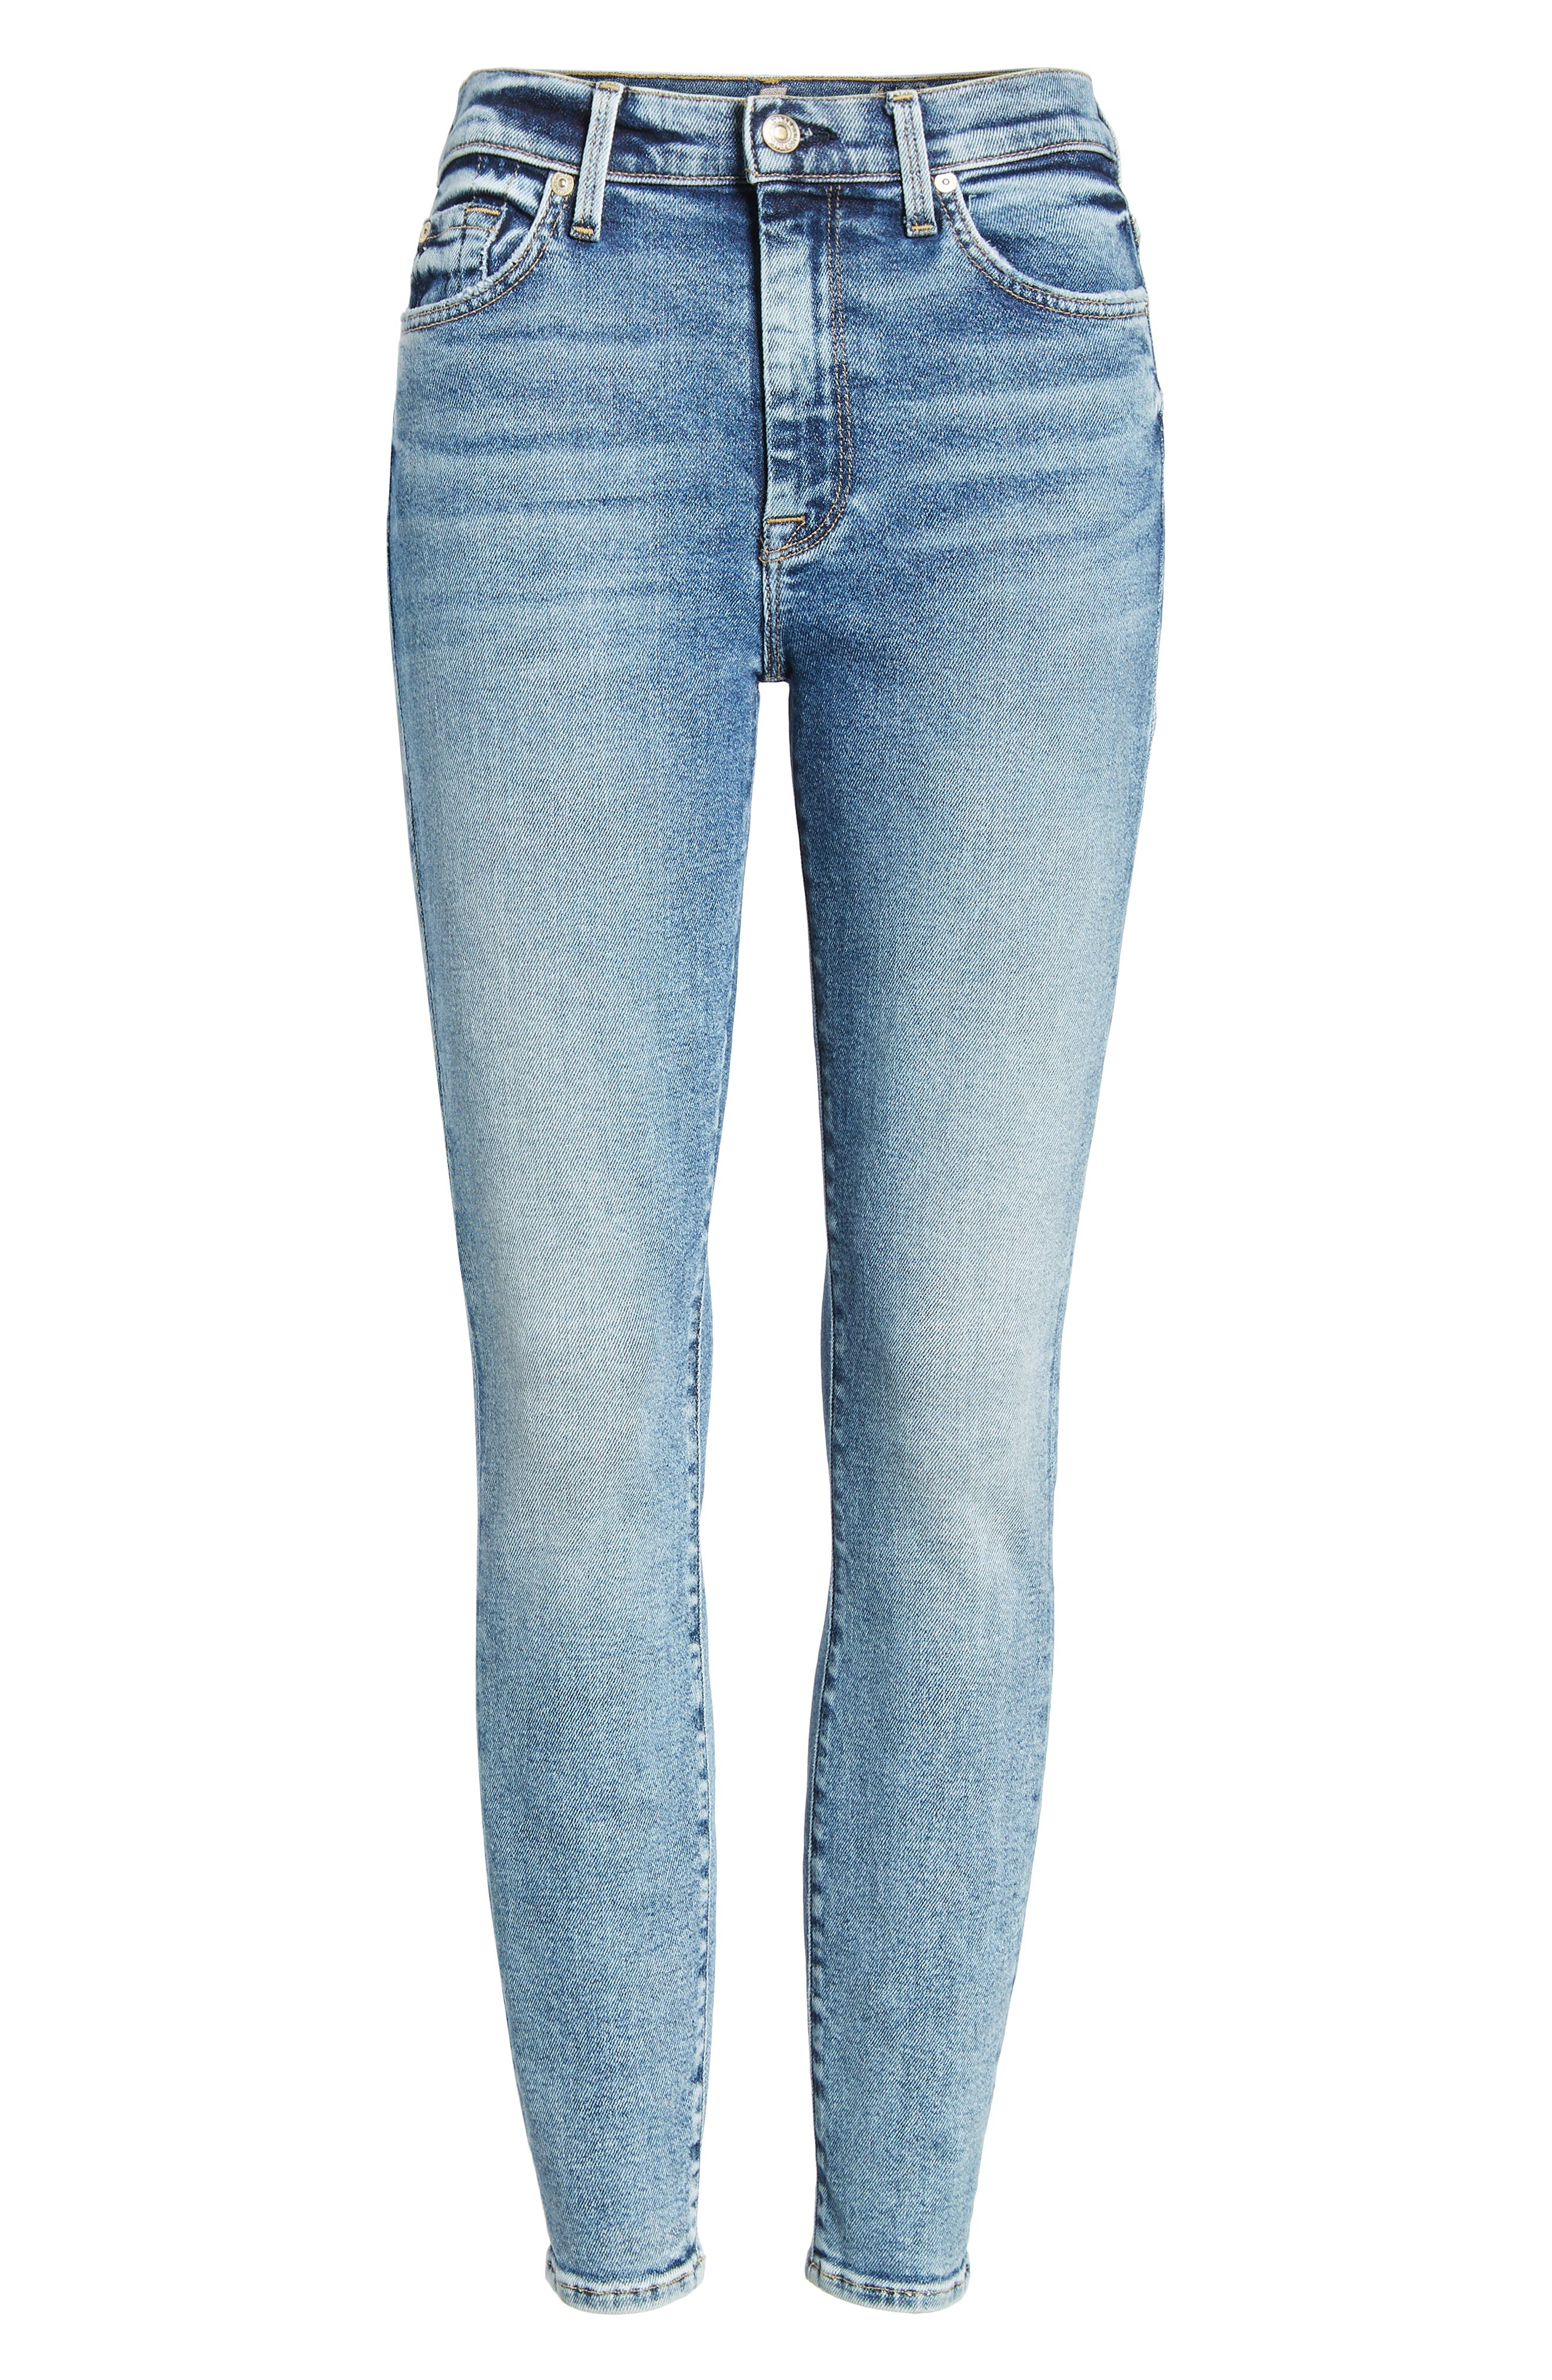 Luxe Vintage High Waist Ankle Skinny Jeans,                             Alternate thumbnail 7, color,                             LUXE VINTAGE MUSE